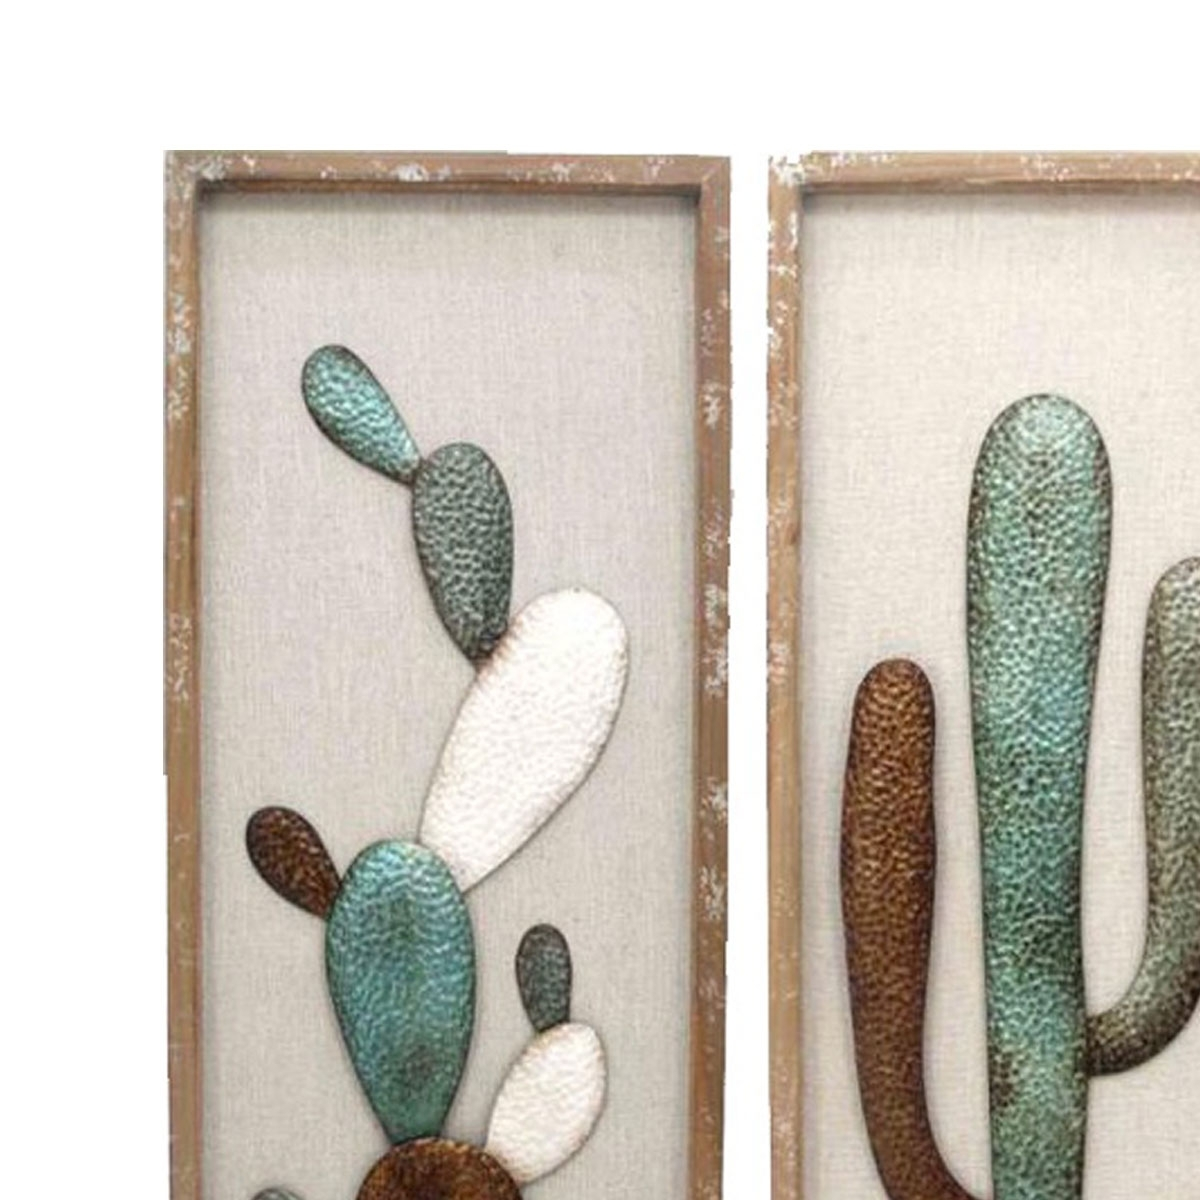 Framed Cactus Wood And Metal Wall Art | Luxe Mirrors Regarding Most Current Cactus Wall Art (View 13 of 20)